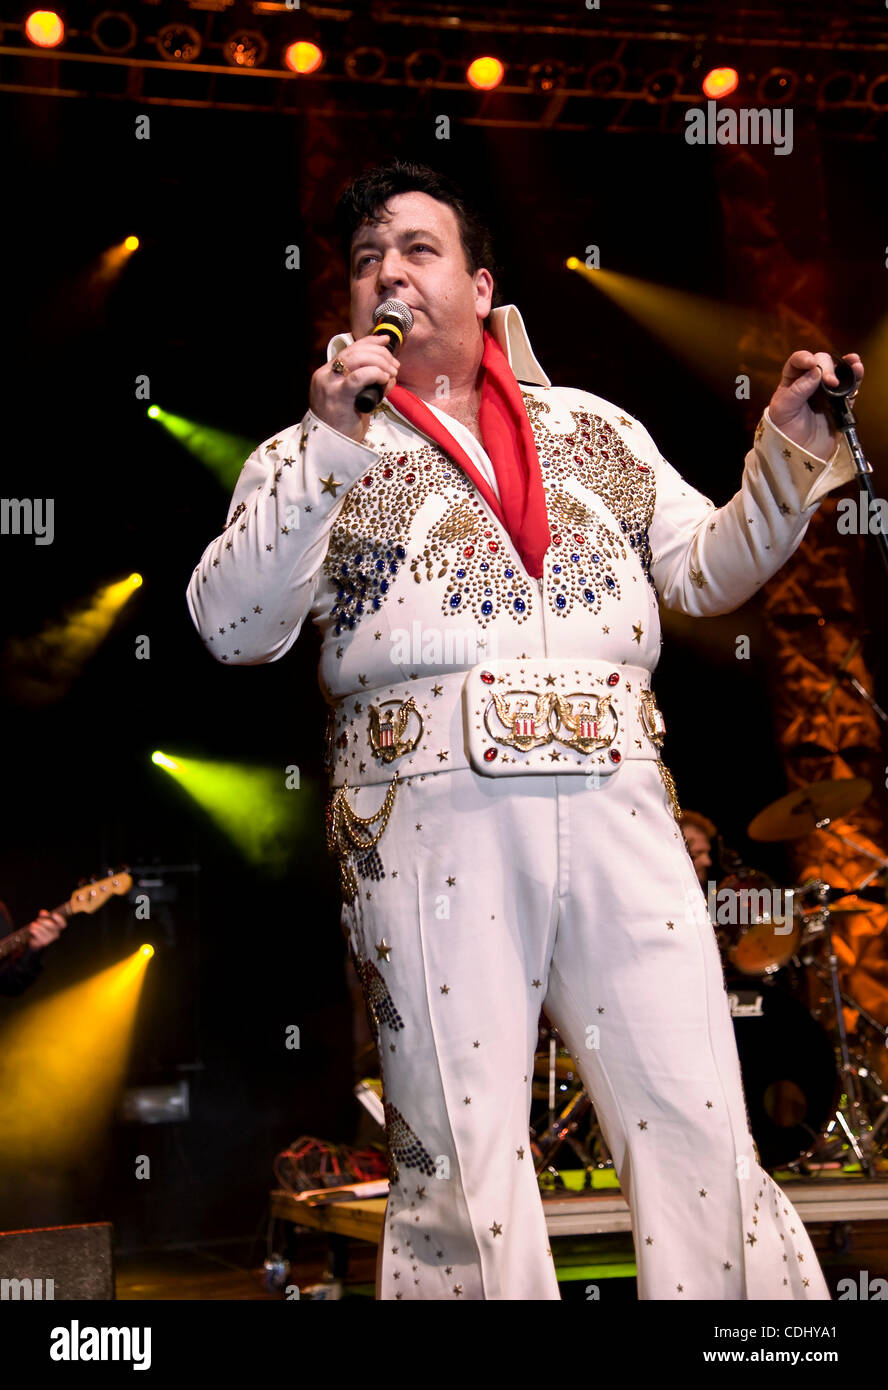 Feb.12, 2011 - Tampa, Florida, USA - GREG RINI, of Chicago, Illinois, singing 'If I Can Dream' at the 2011 - Stock Image